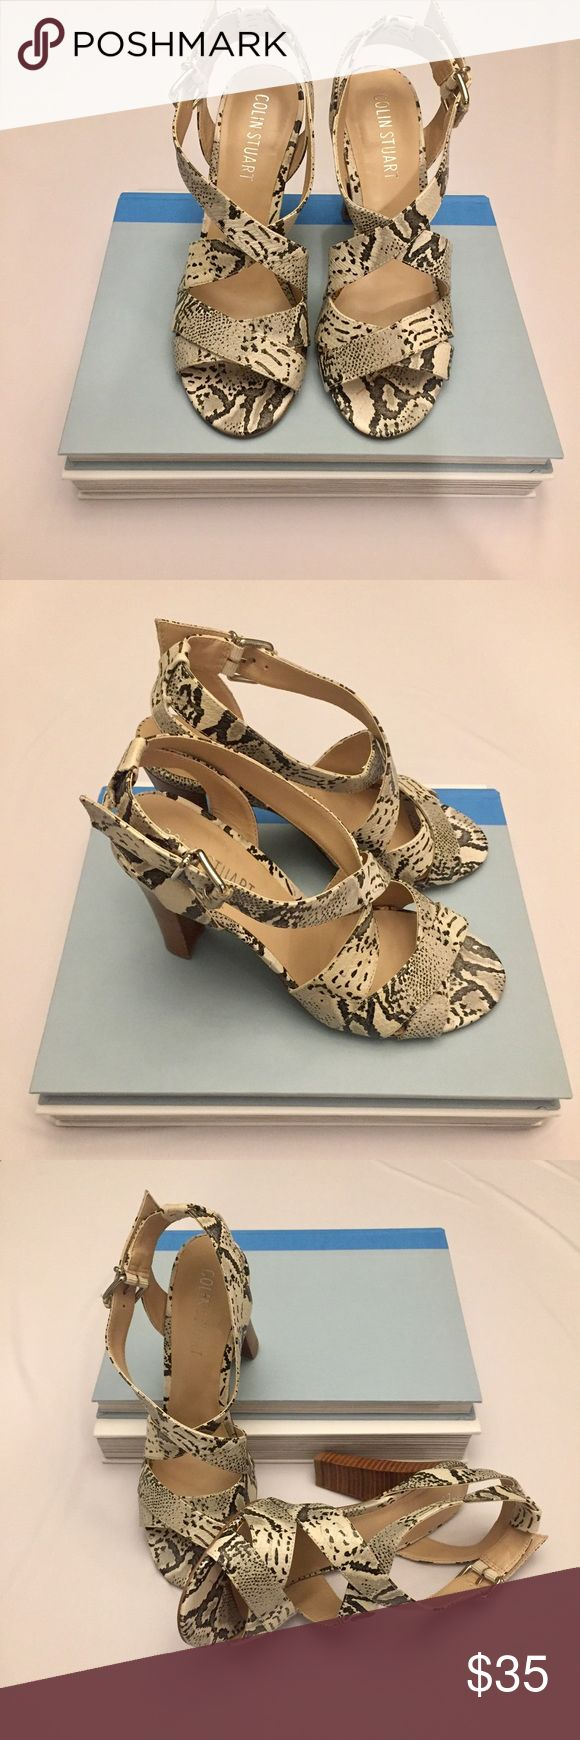 "Colin Stuart Snake Print High Heel Sandals Sz 7.5 Nice pair of Colin Stuart leather high heel sandals in a snake skin pattern.  These are in excellent preowned condition.  Heel height is 4"". Colin Stuart Shoes Sandals"